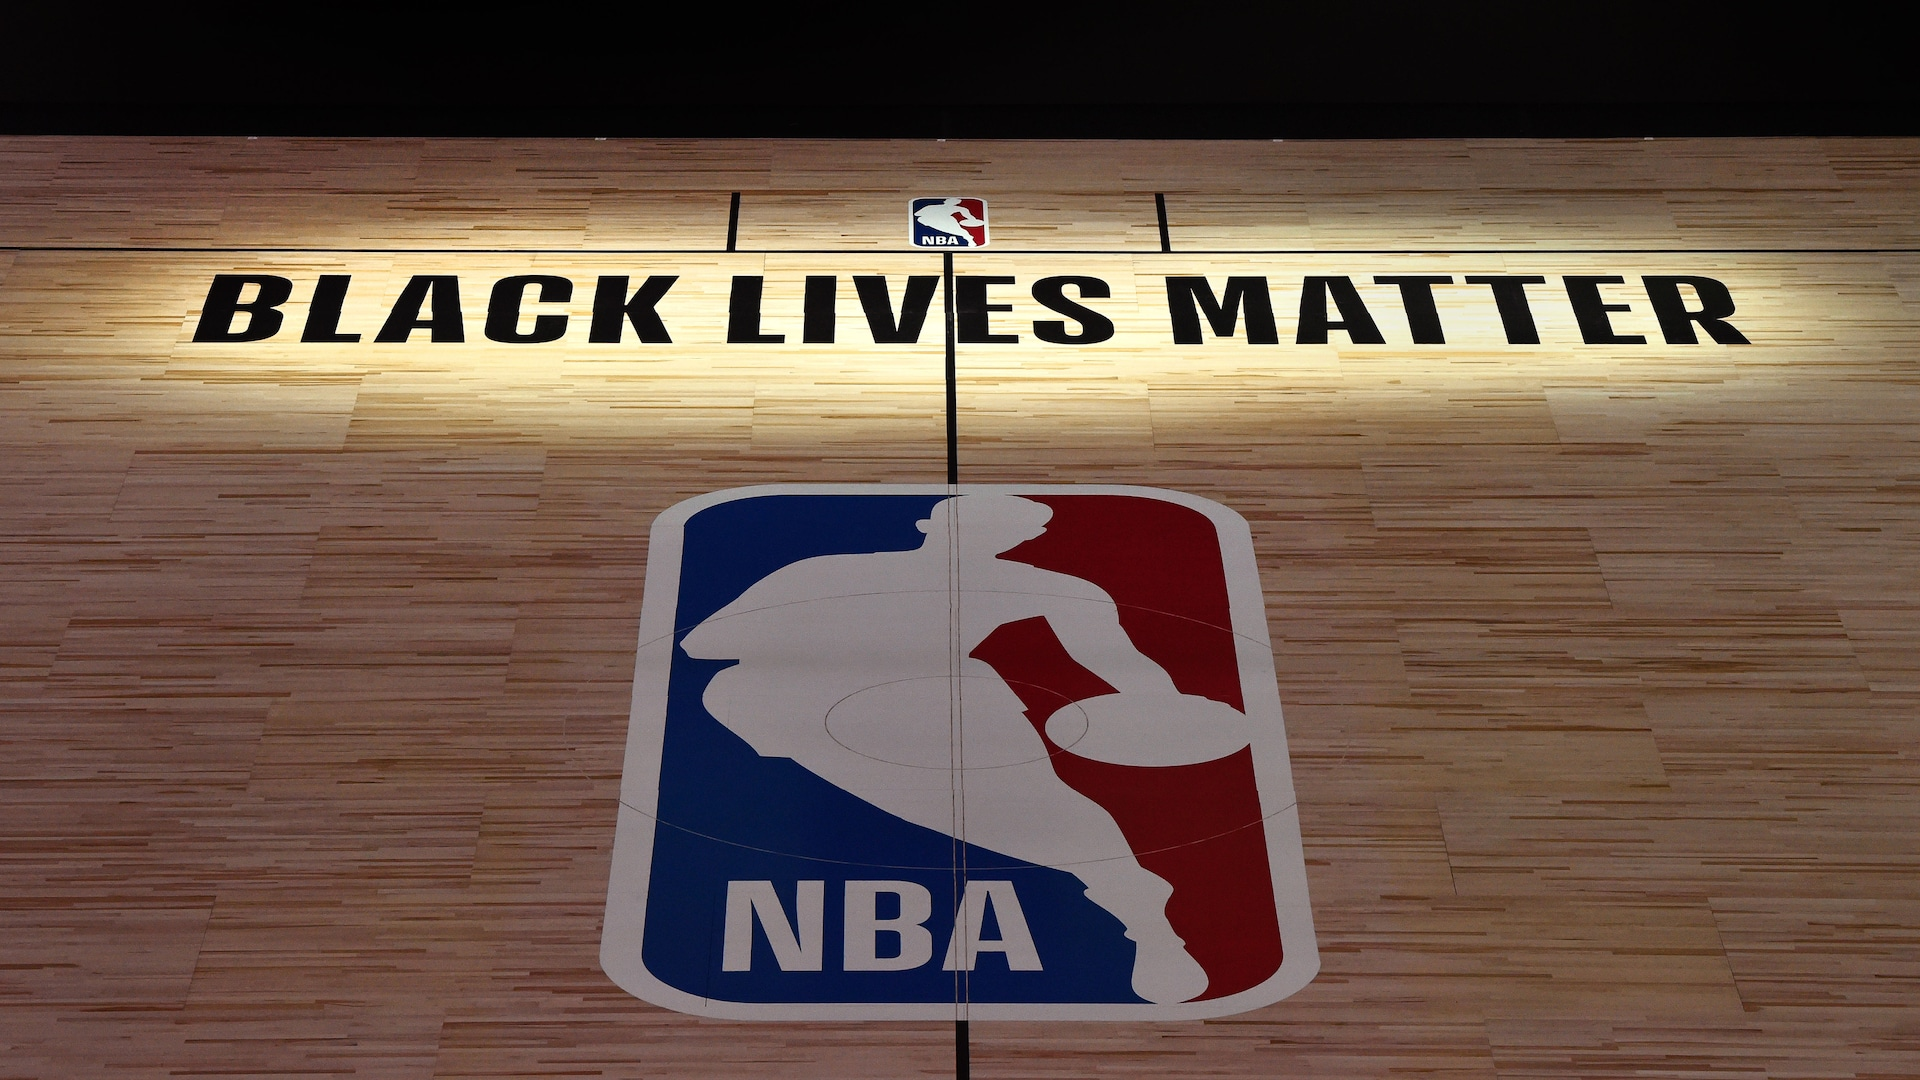 NBA Board of Governors launch first-ever NBA Foundation with NBPA to support Black communities and drive generational change